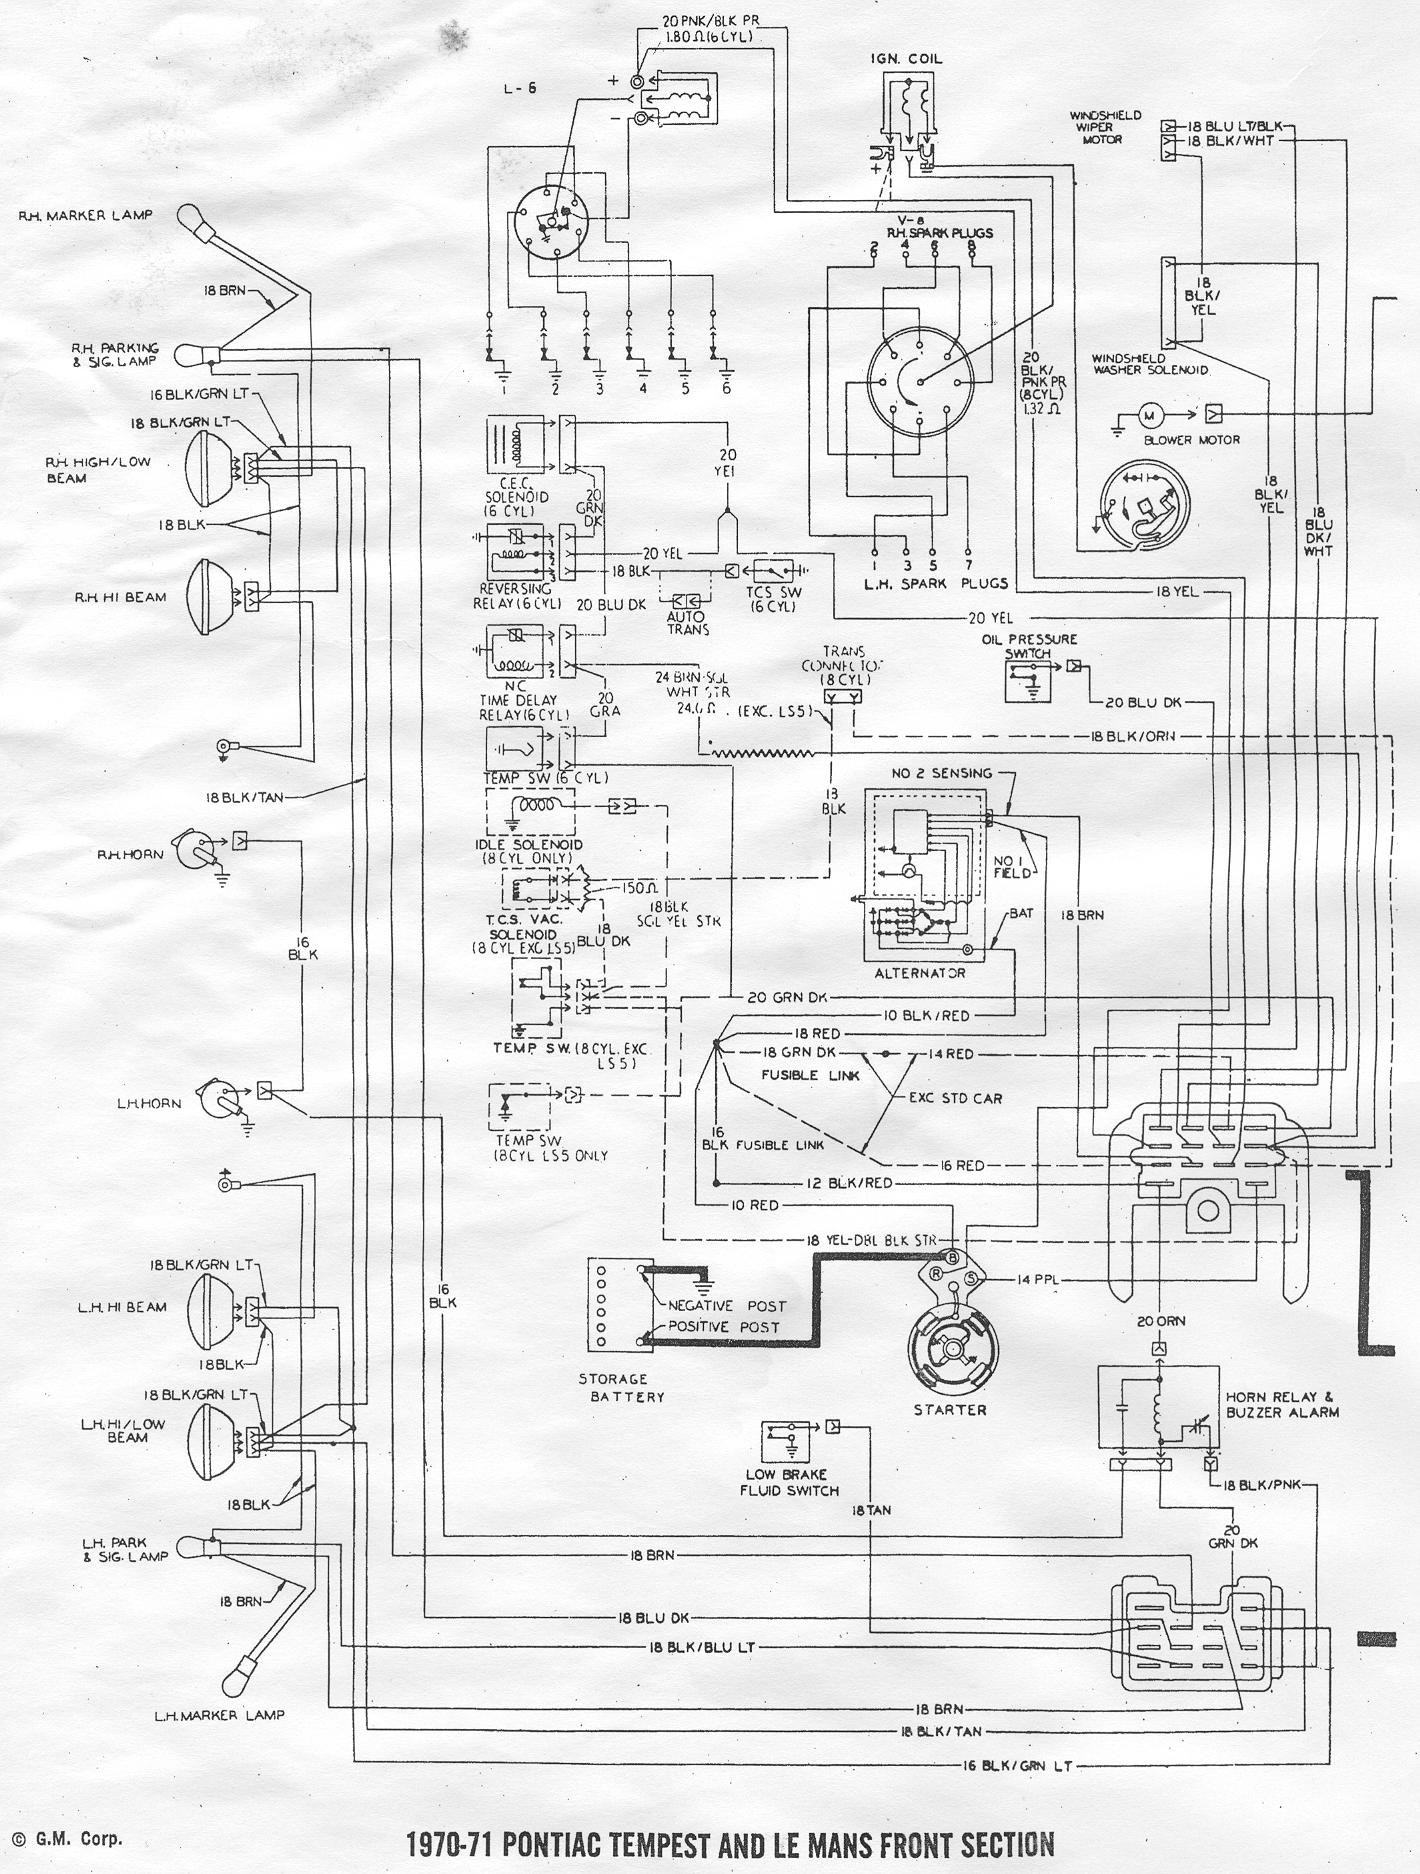 Electrical Symbols Drawing At Free For Personal Kinds Of Diagram 1420x1874 Ranger Wiring Photo Album Wire Images Inspirations Ford